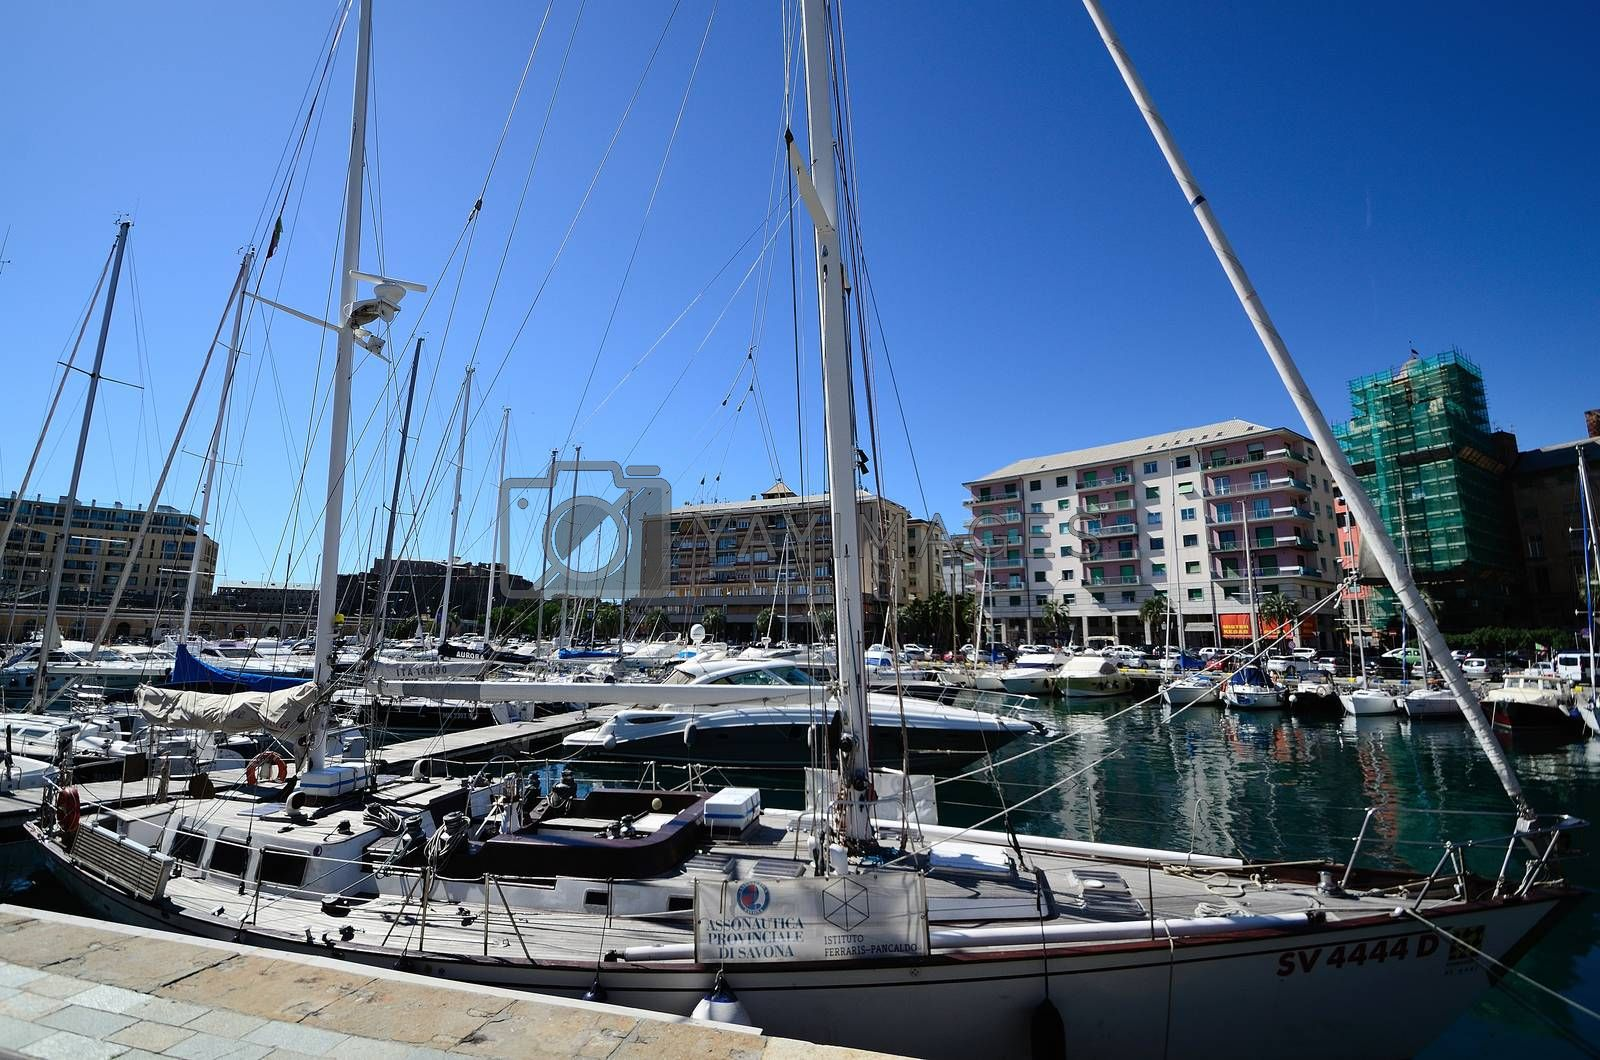 many white beautiful boats in the port of Savona